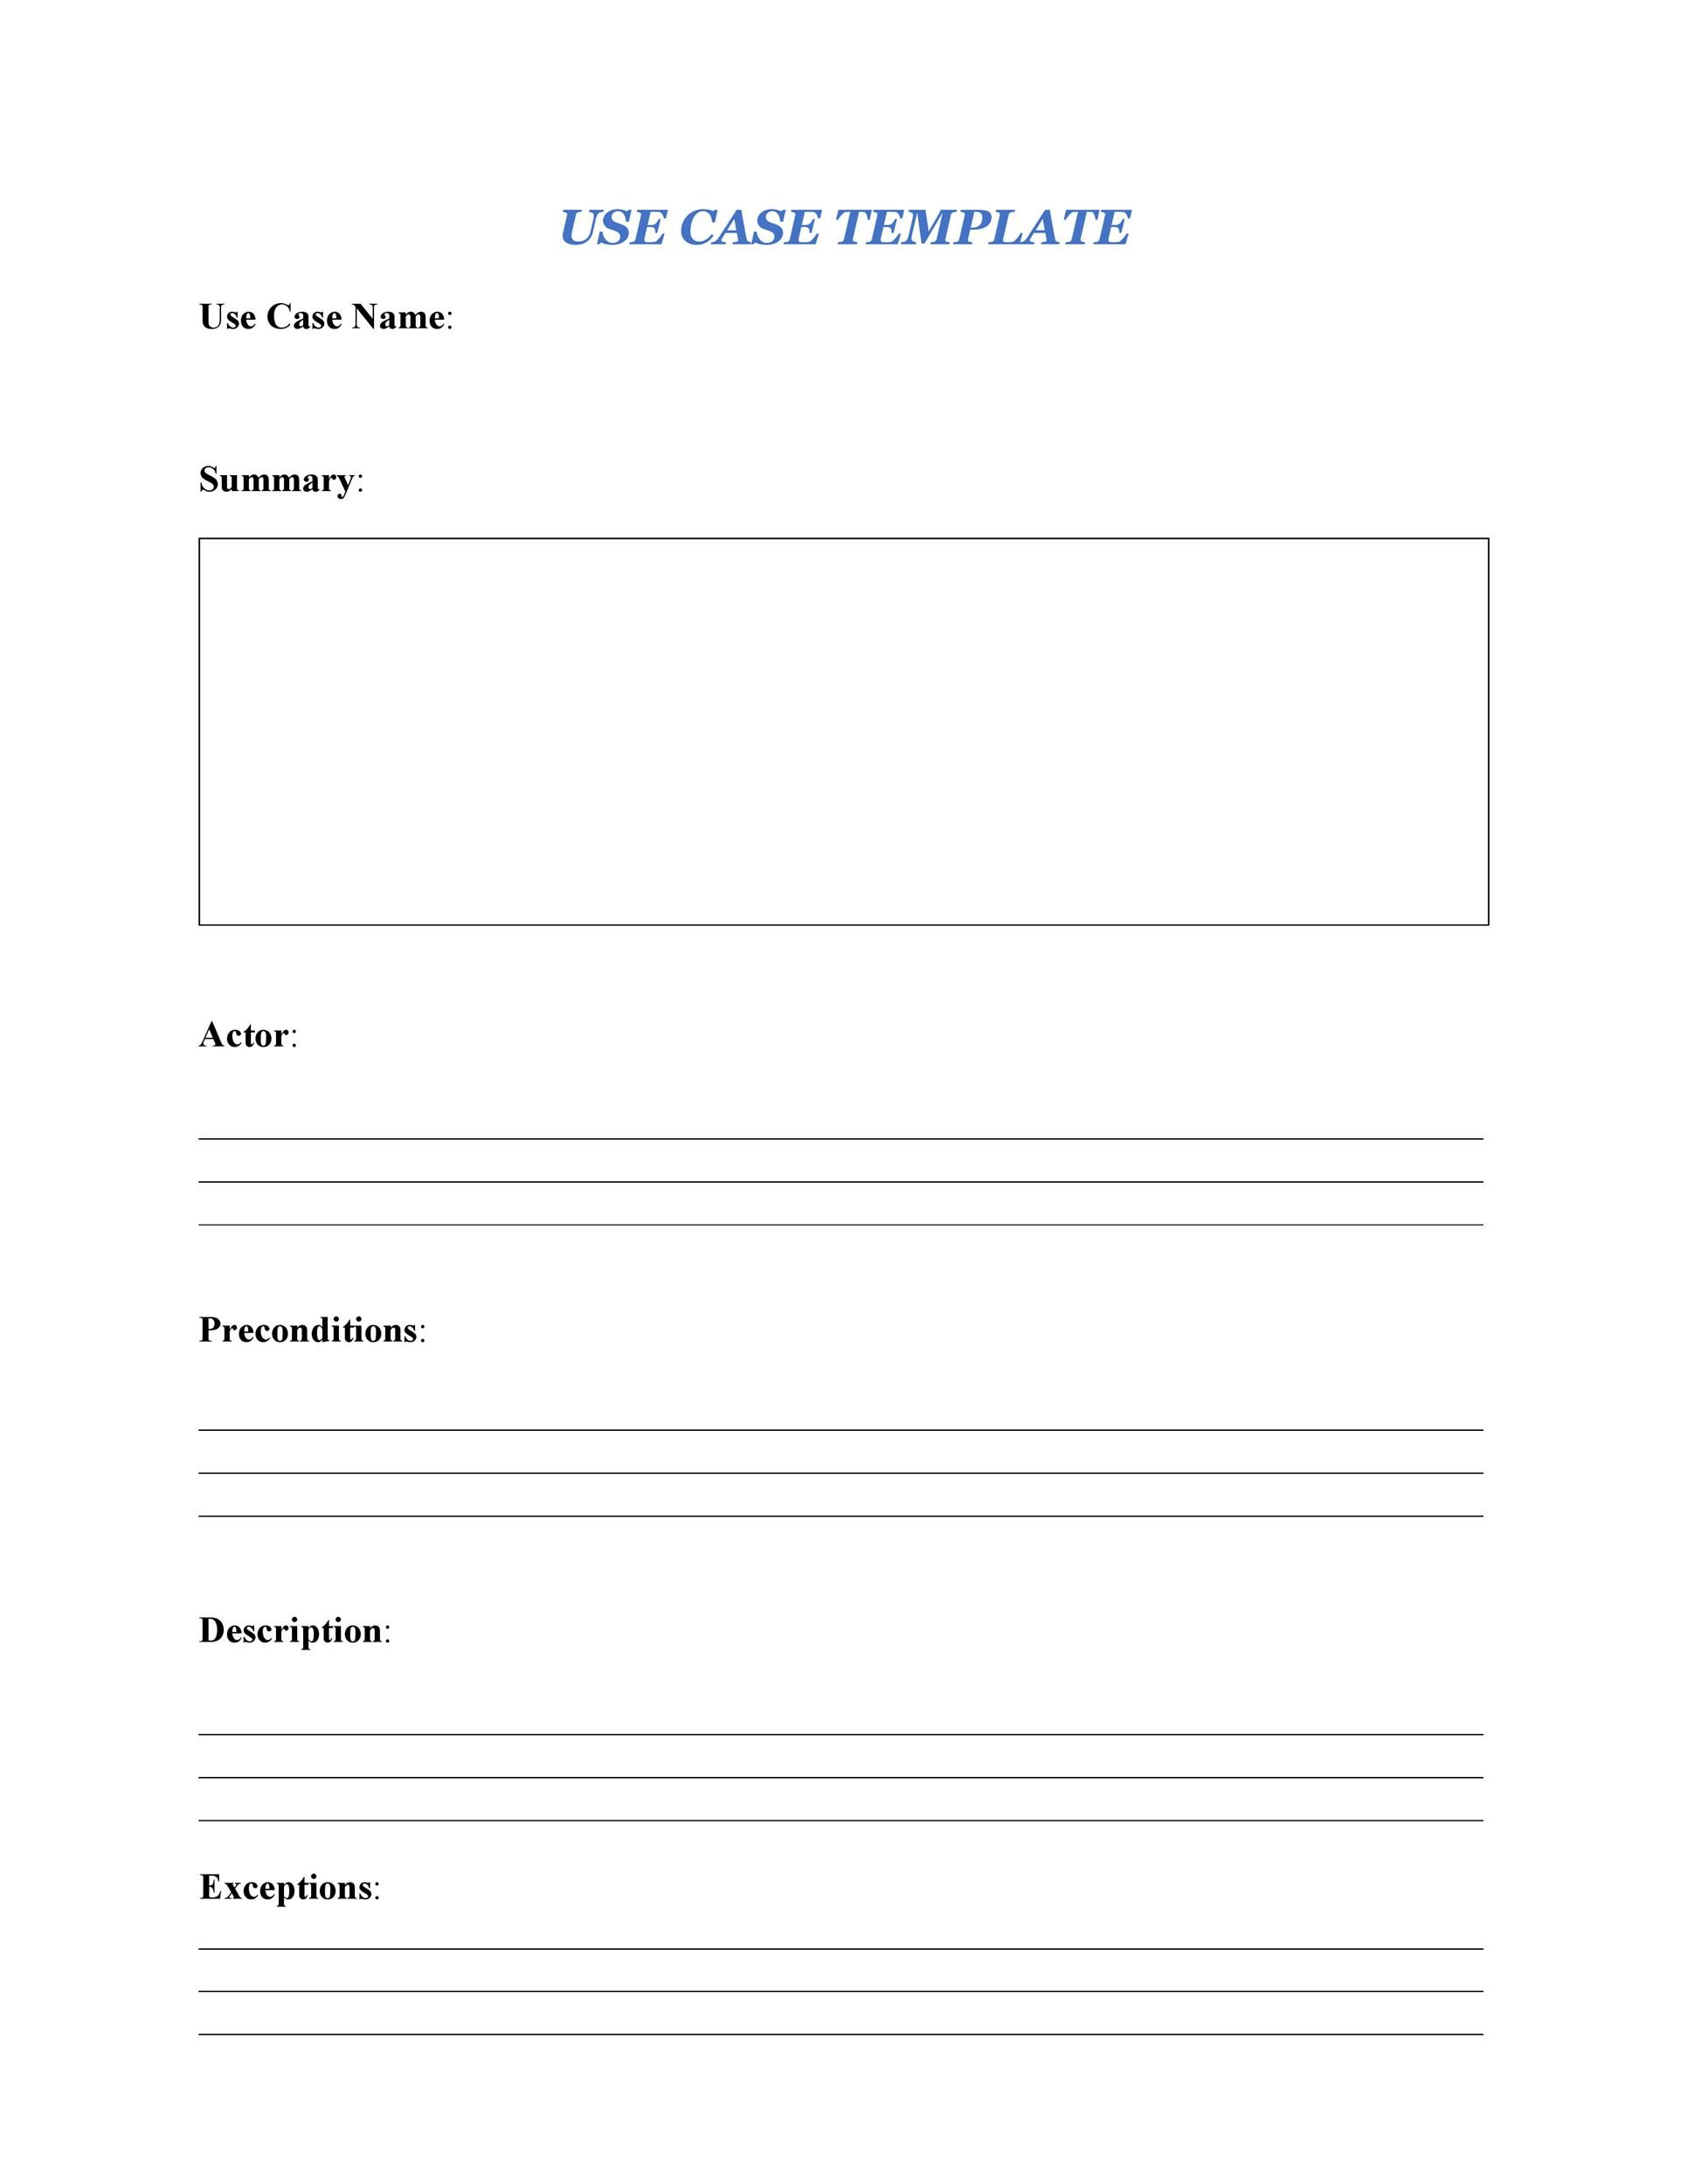 Free Use Case Template 15